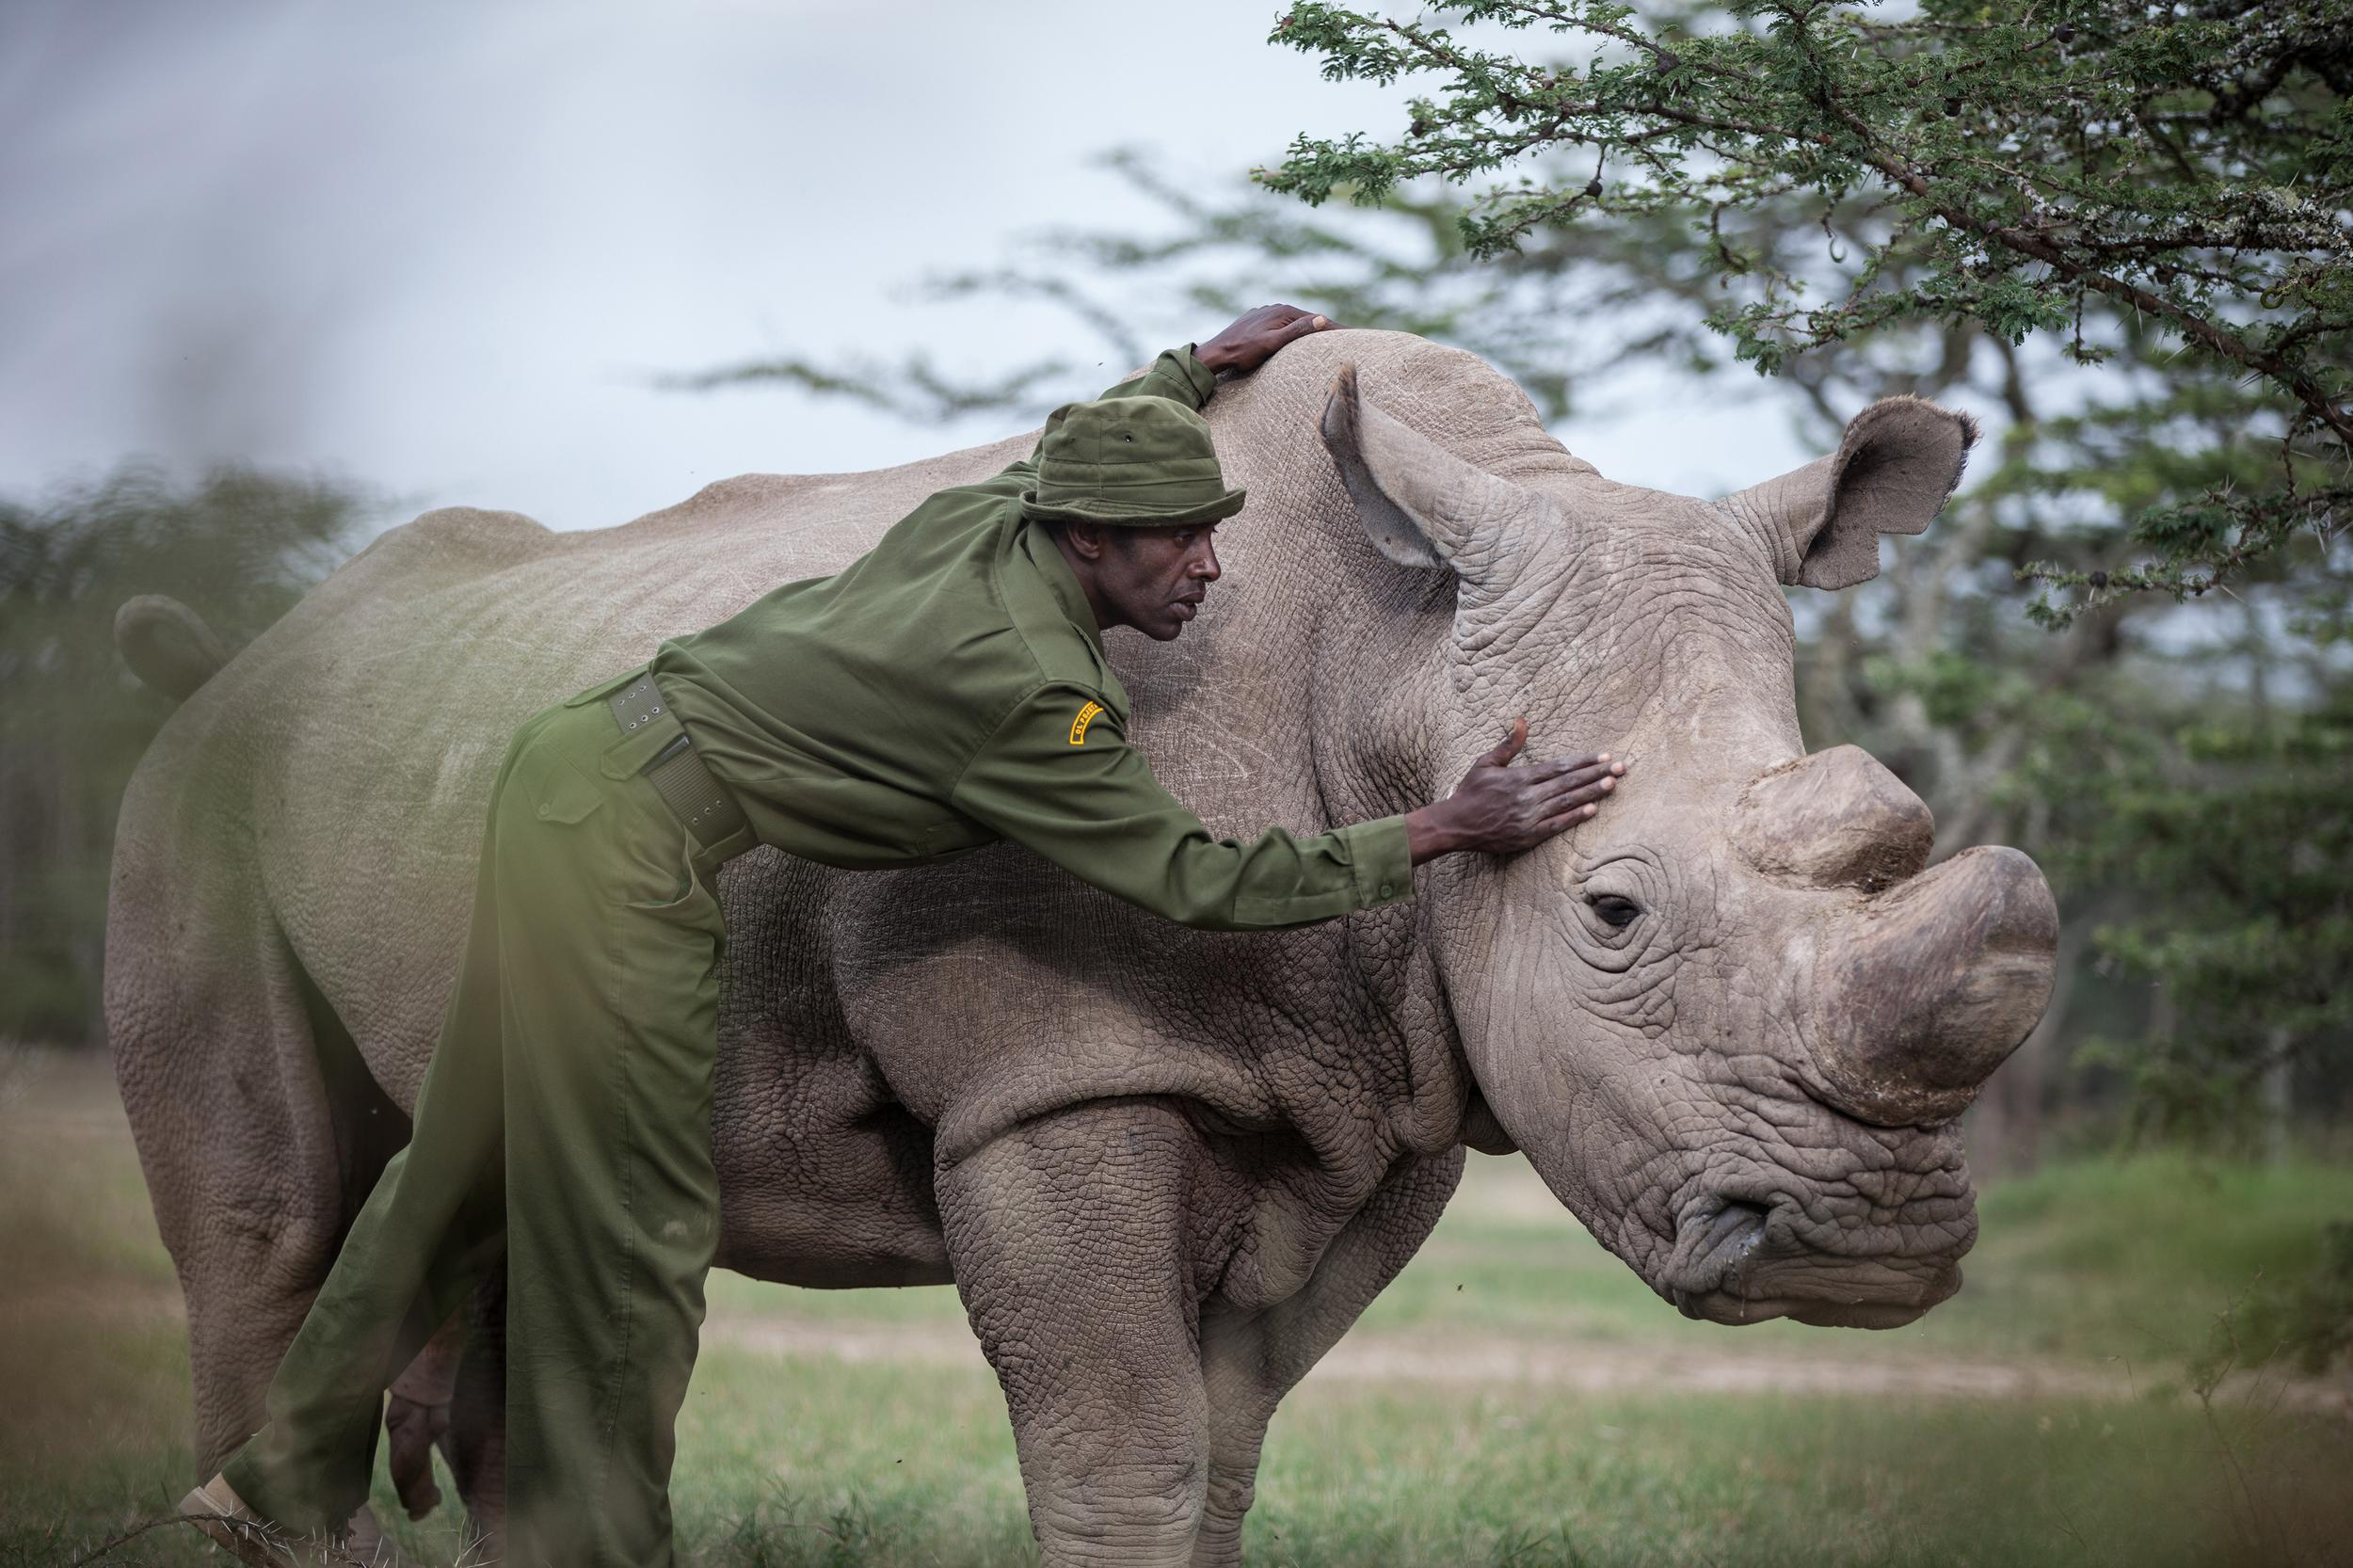 OL PEJETA CONSERVANCY, Kenya - Mohammed Doyo, head caretaker, caresses Sudan. The last male northern white rhino left on the planet, Sudan lives alone in a 10-acre enclosure, with 24-hour guards. With just five northern white rhinos left on earth - three of them here in Kenya -  conservationists are searching for a scientific breakthrough that could save a population that is already effectively extinct. (Nichole Sobecki for The Washington Post via Getty Images)